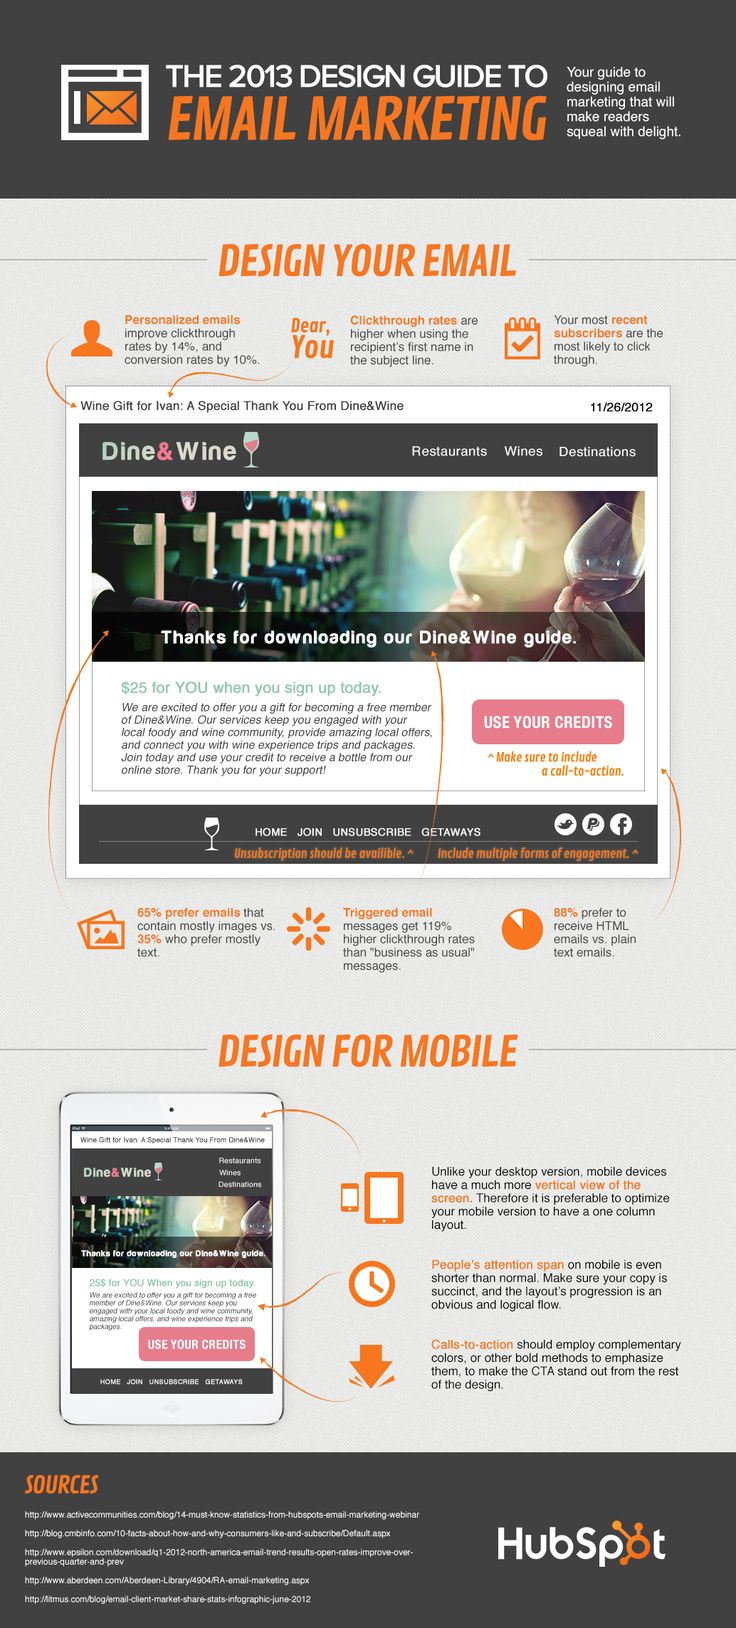 Email Marketing Design Guide For 2013 [Infographic]